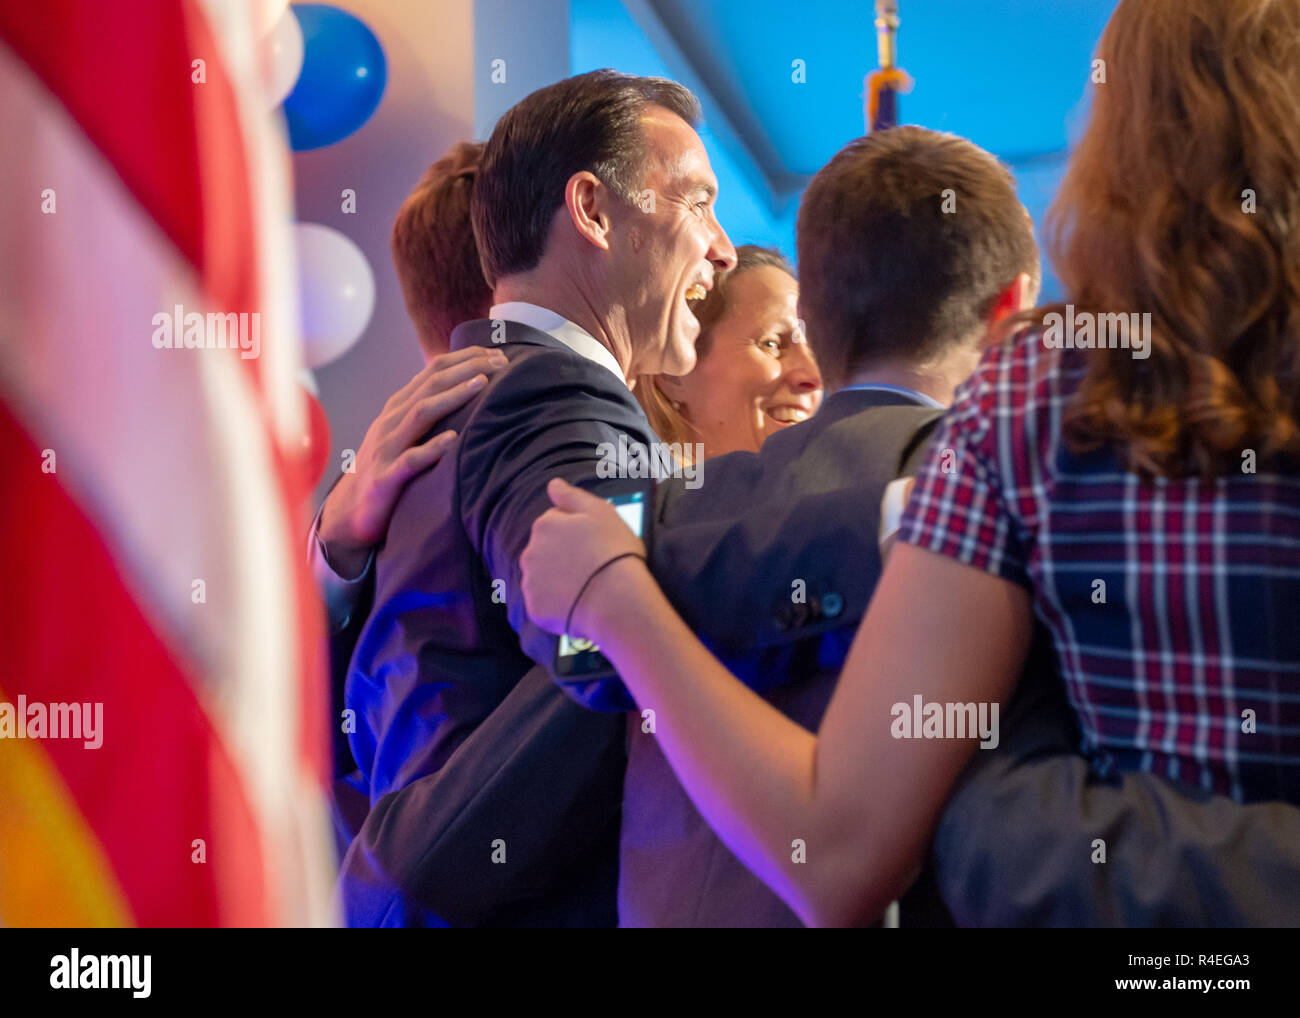 November 6, 2018 - Garden City, New York, United States - At left, Congressman TOM SUOZZI, on stage with his wife HELENE and their daughter and two sons, spoke after winning re-election as U.S. Representative for New York's 3rd district. Nassau County Democrats watched Election Day results at Garden City Hotel, Long Island. (Credit Image: © Ann Parry/ZUMA Wire) Stock Photo